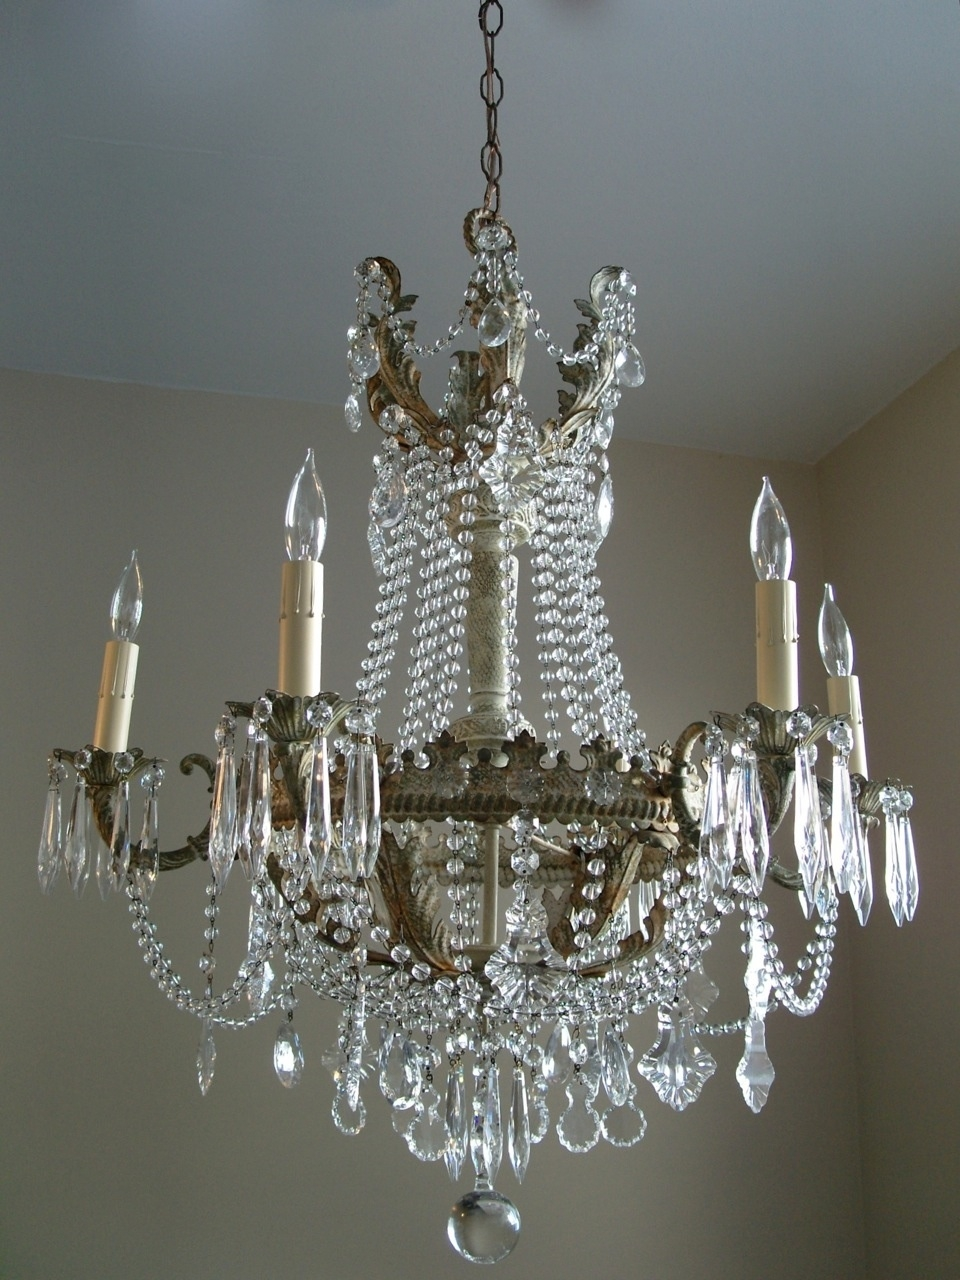 Enchanting Birdcage Chandelier Shab Chic 6 Birdcage Chandelier Pertaining To Shabby Chic Chandeliers (View 15 of 15)